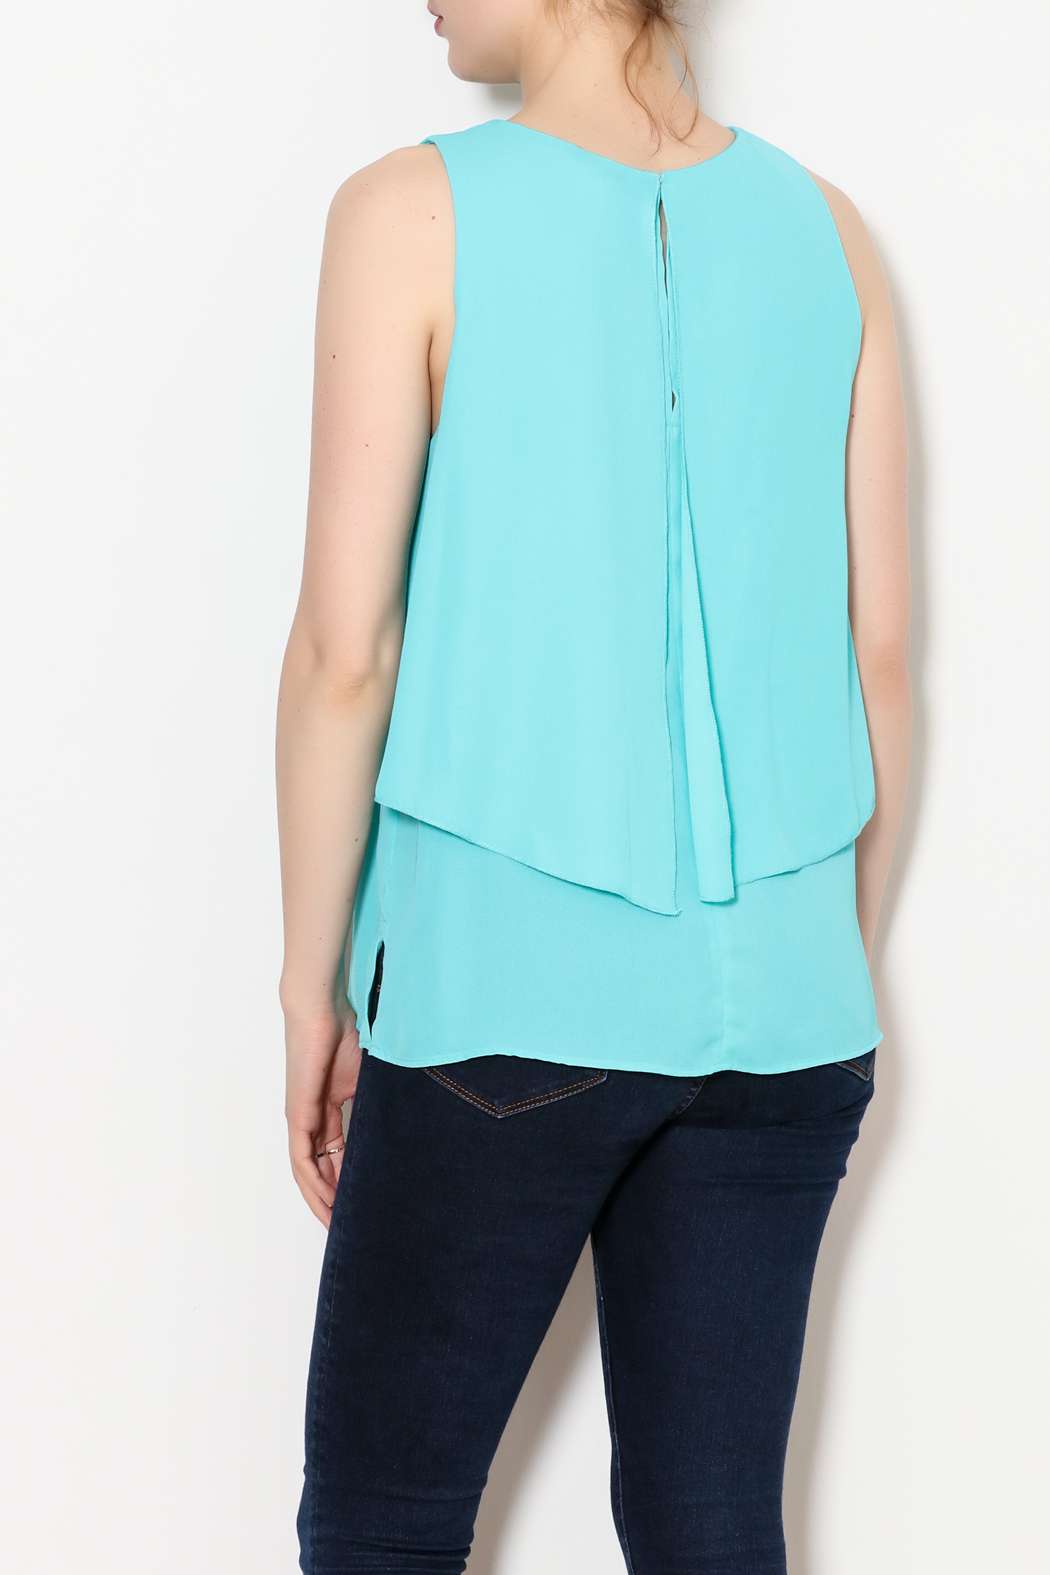 Kay Celine Charlotte Layered Top - Back Cropped Image